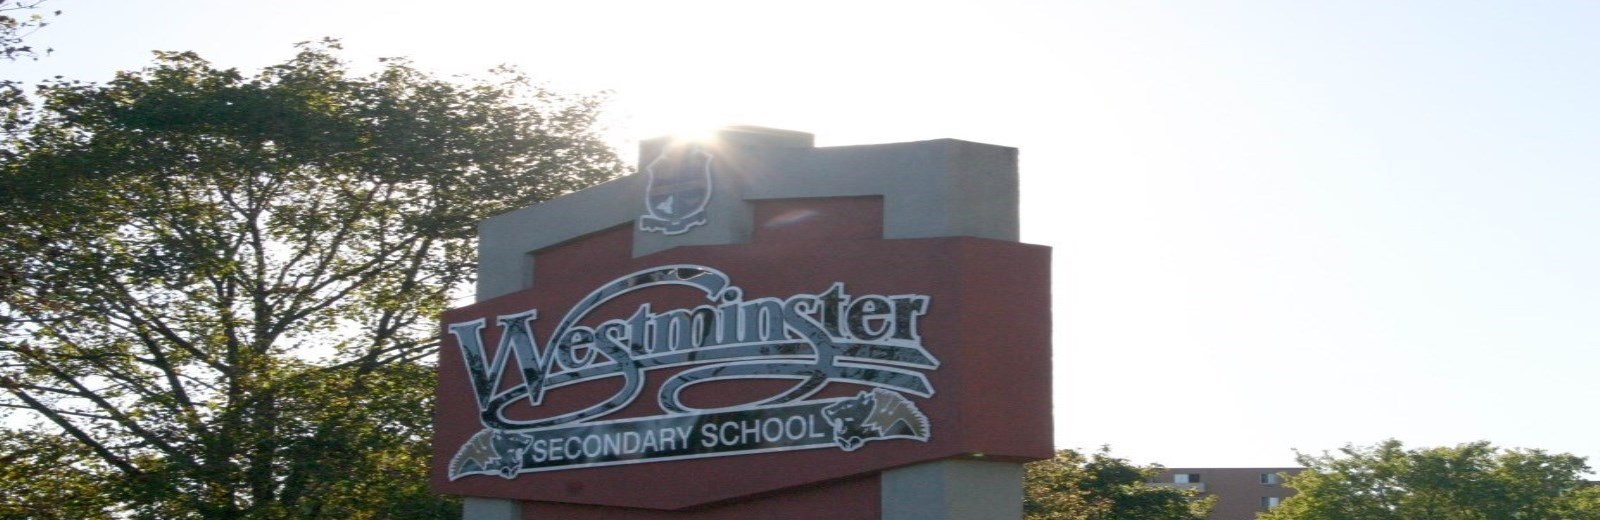 Westminster Secondary School